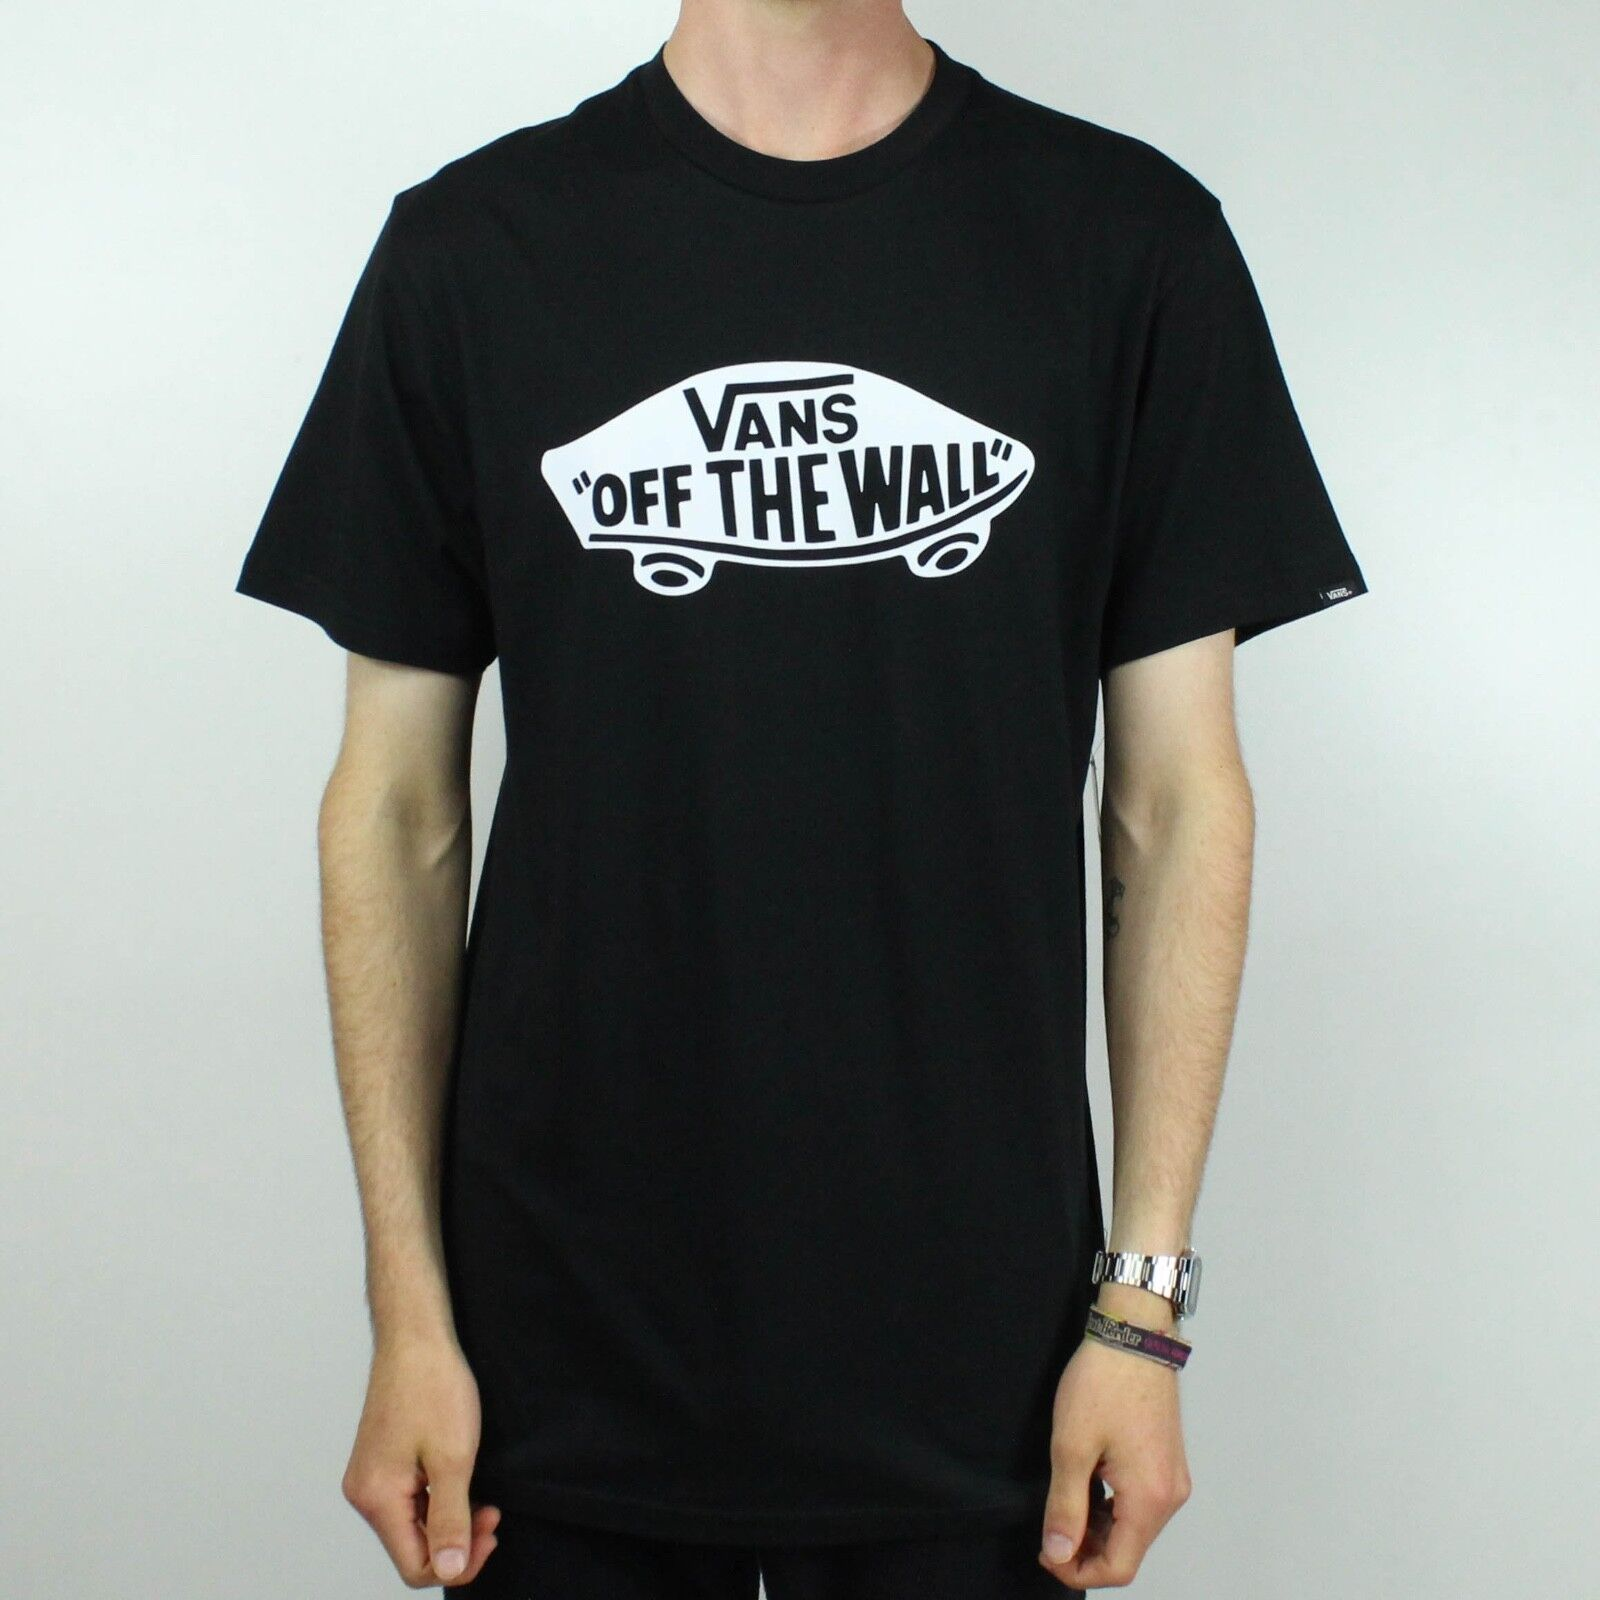 e8d8f17828 Details about Vans Off The Wall T-Shirt Brand New - Black - Size S